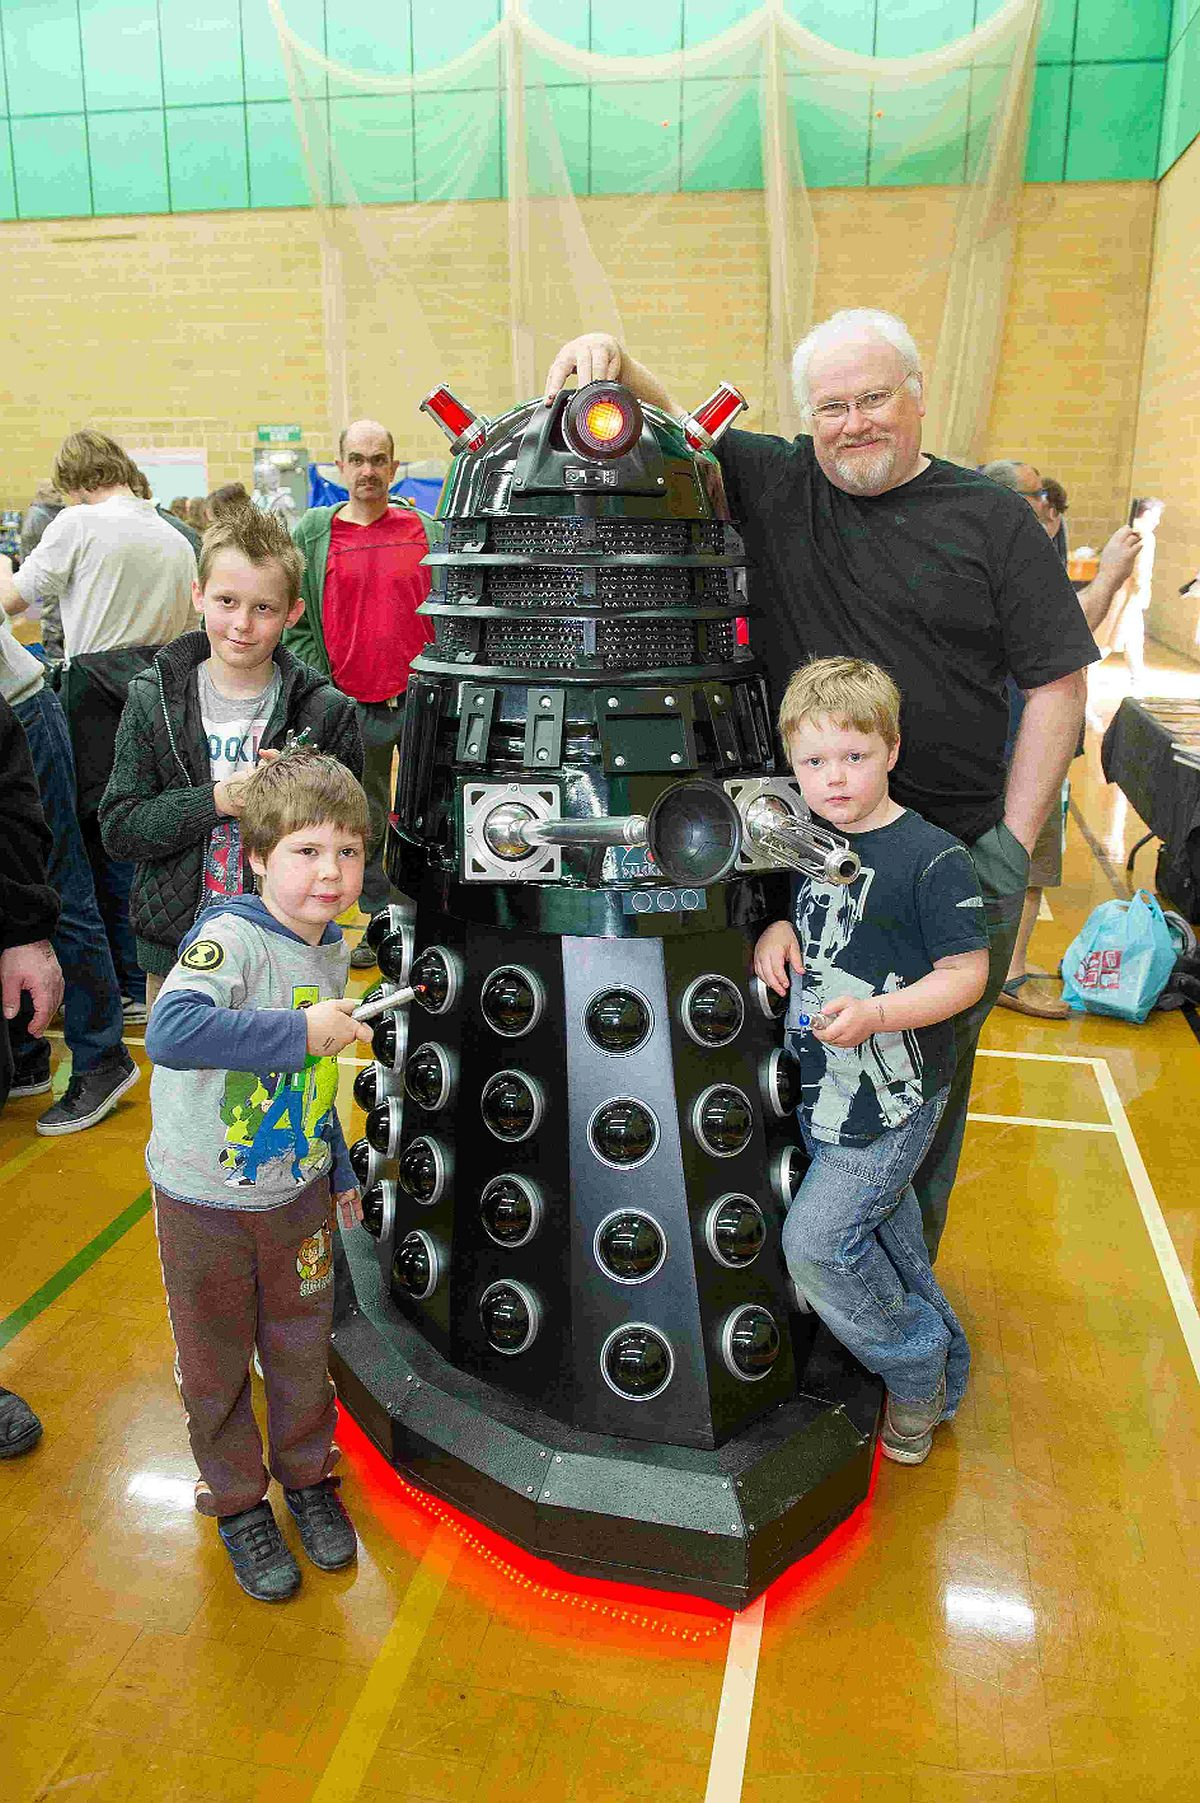 Dr Who Number Six, actor Colin Baker, with young fans Reece, Ethan and Tommy